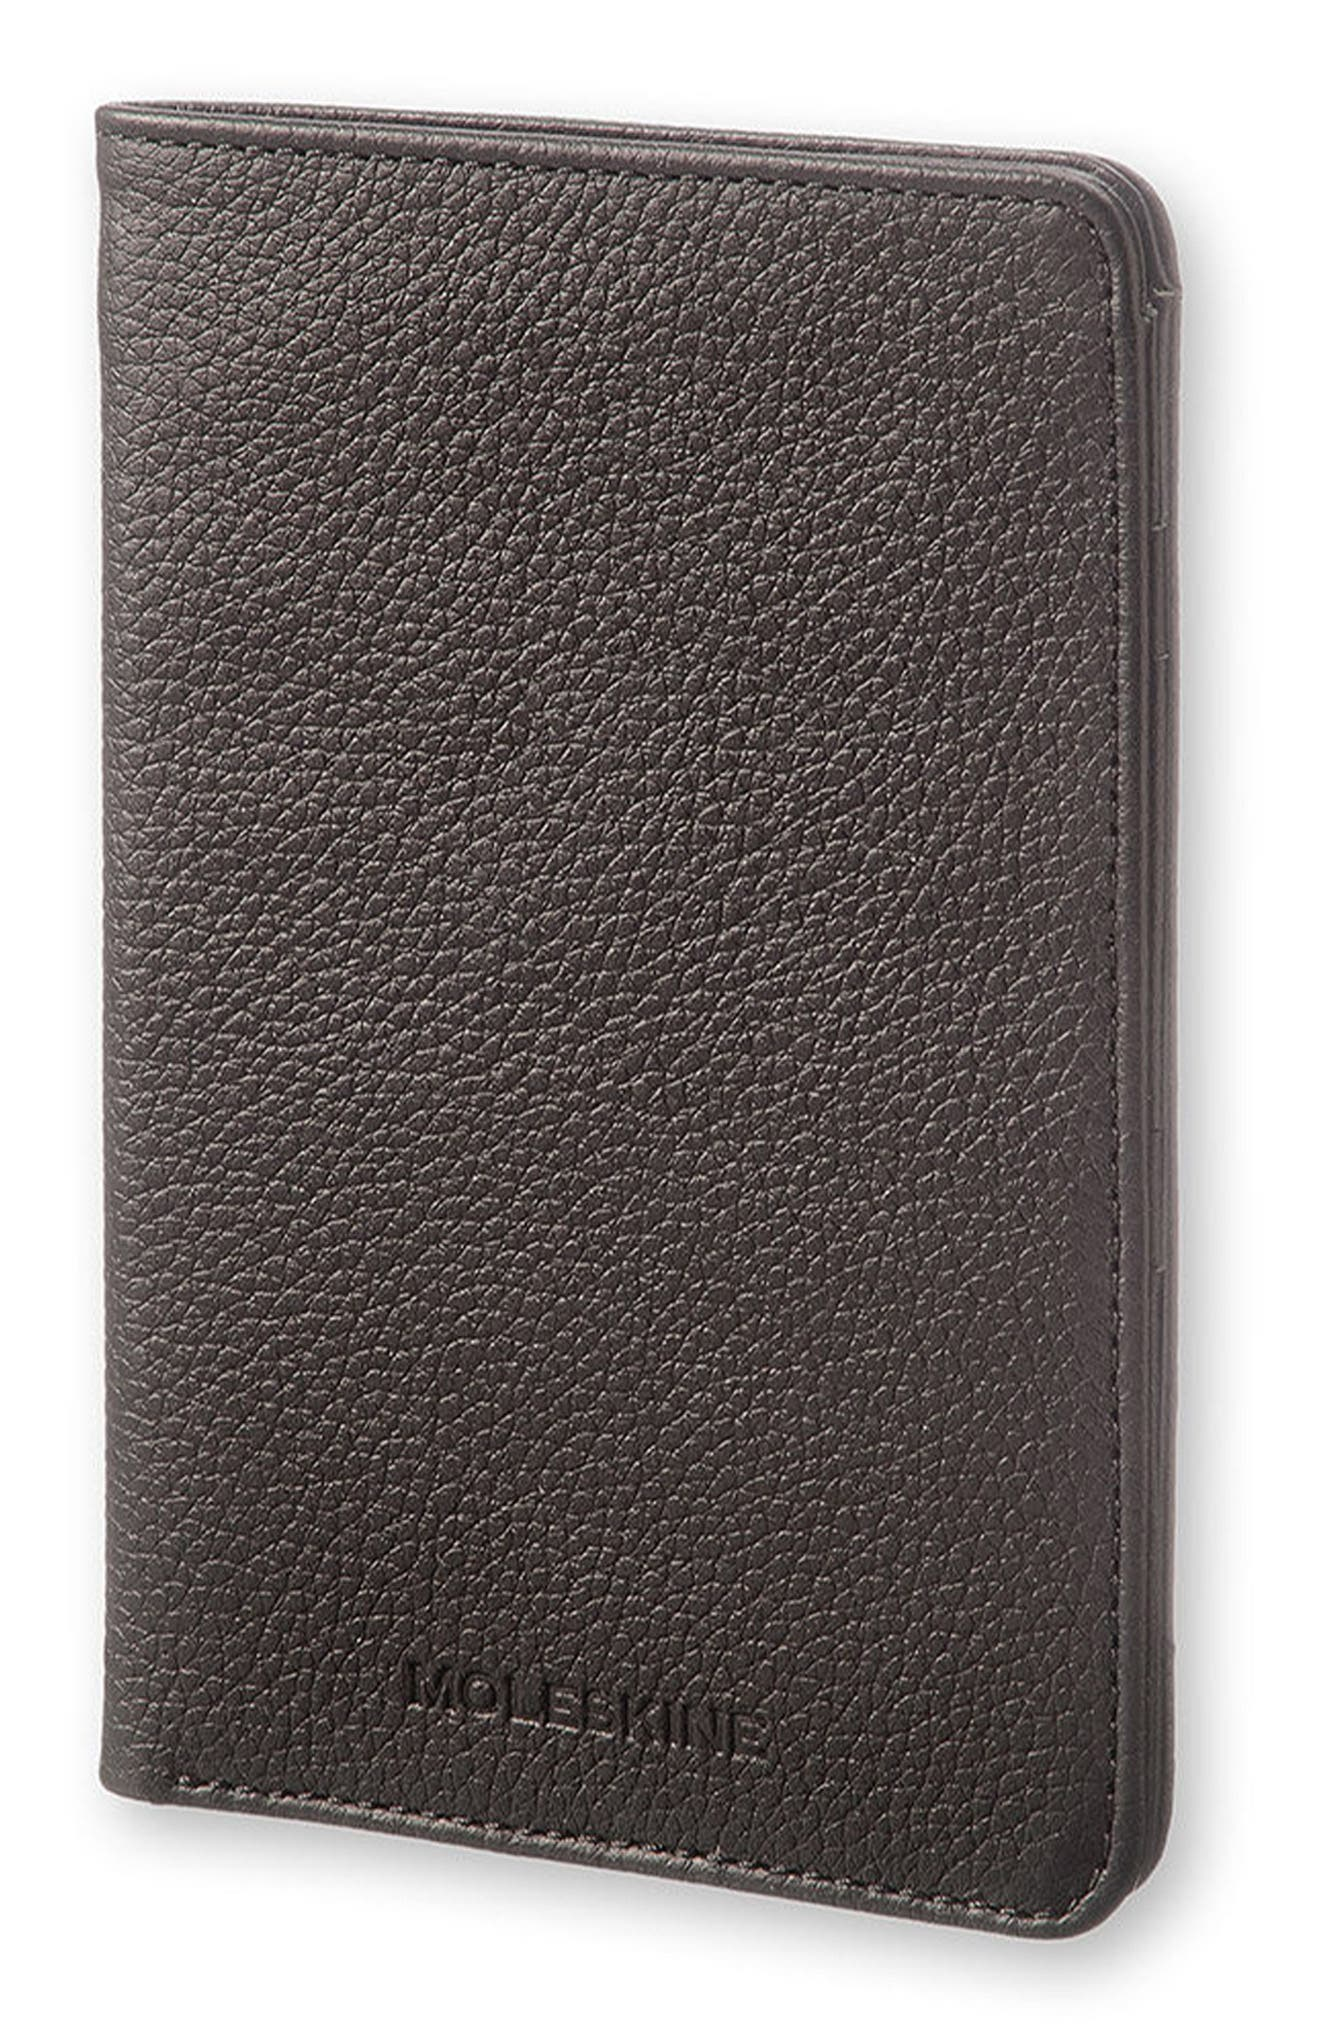 Lineage Leather Passport Wallet,                             Main thumbnail 1, color,                             001